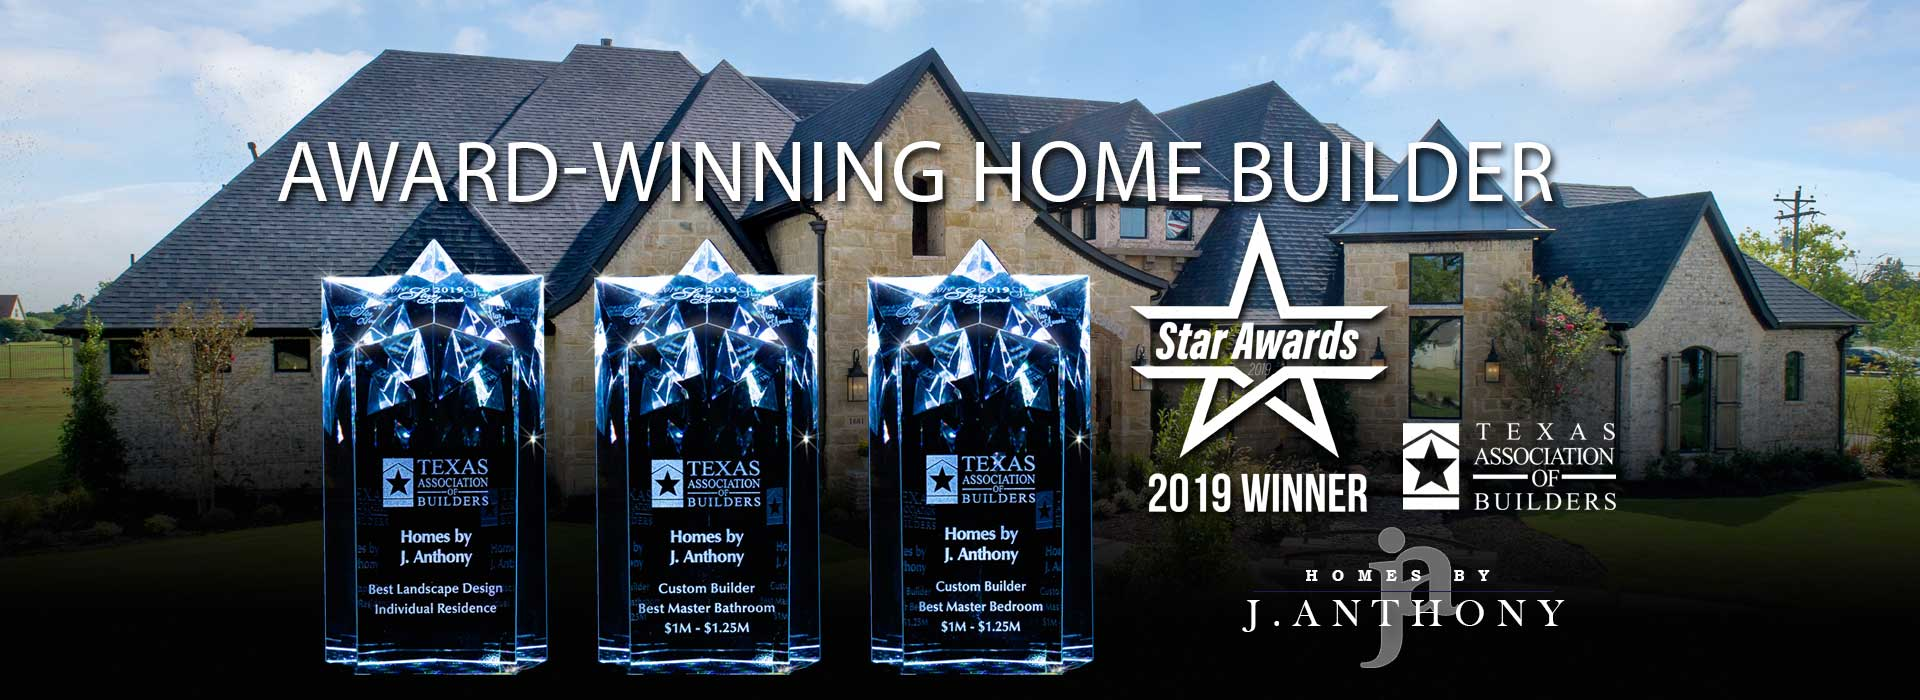 Homes By J Anthony-2019 Award-winning home builder Lucas, TX